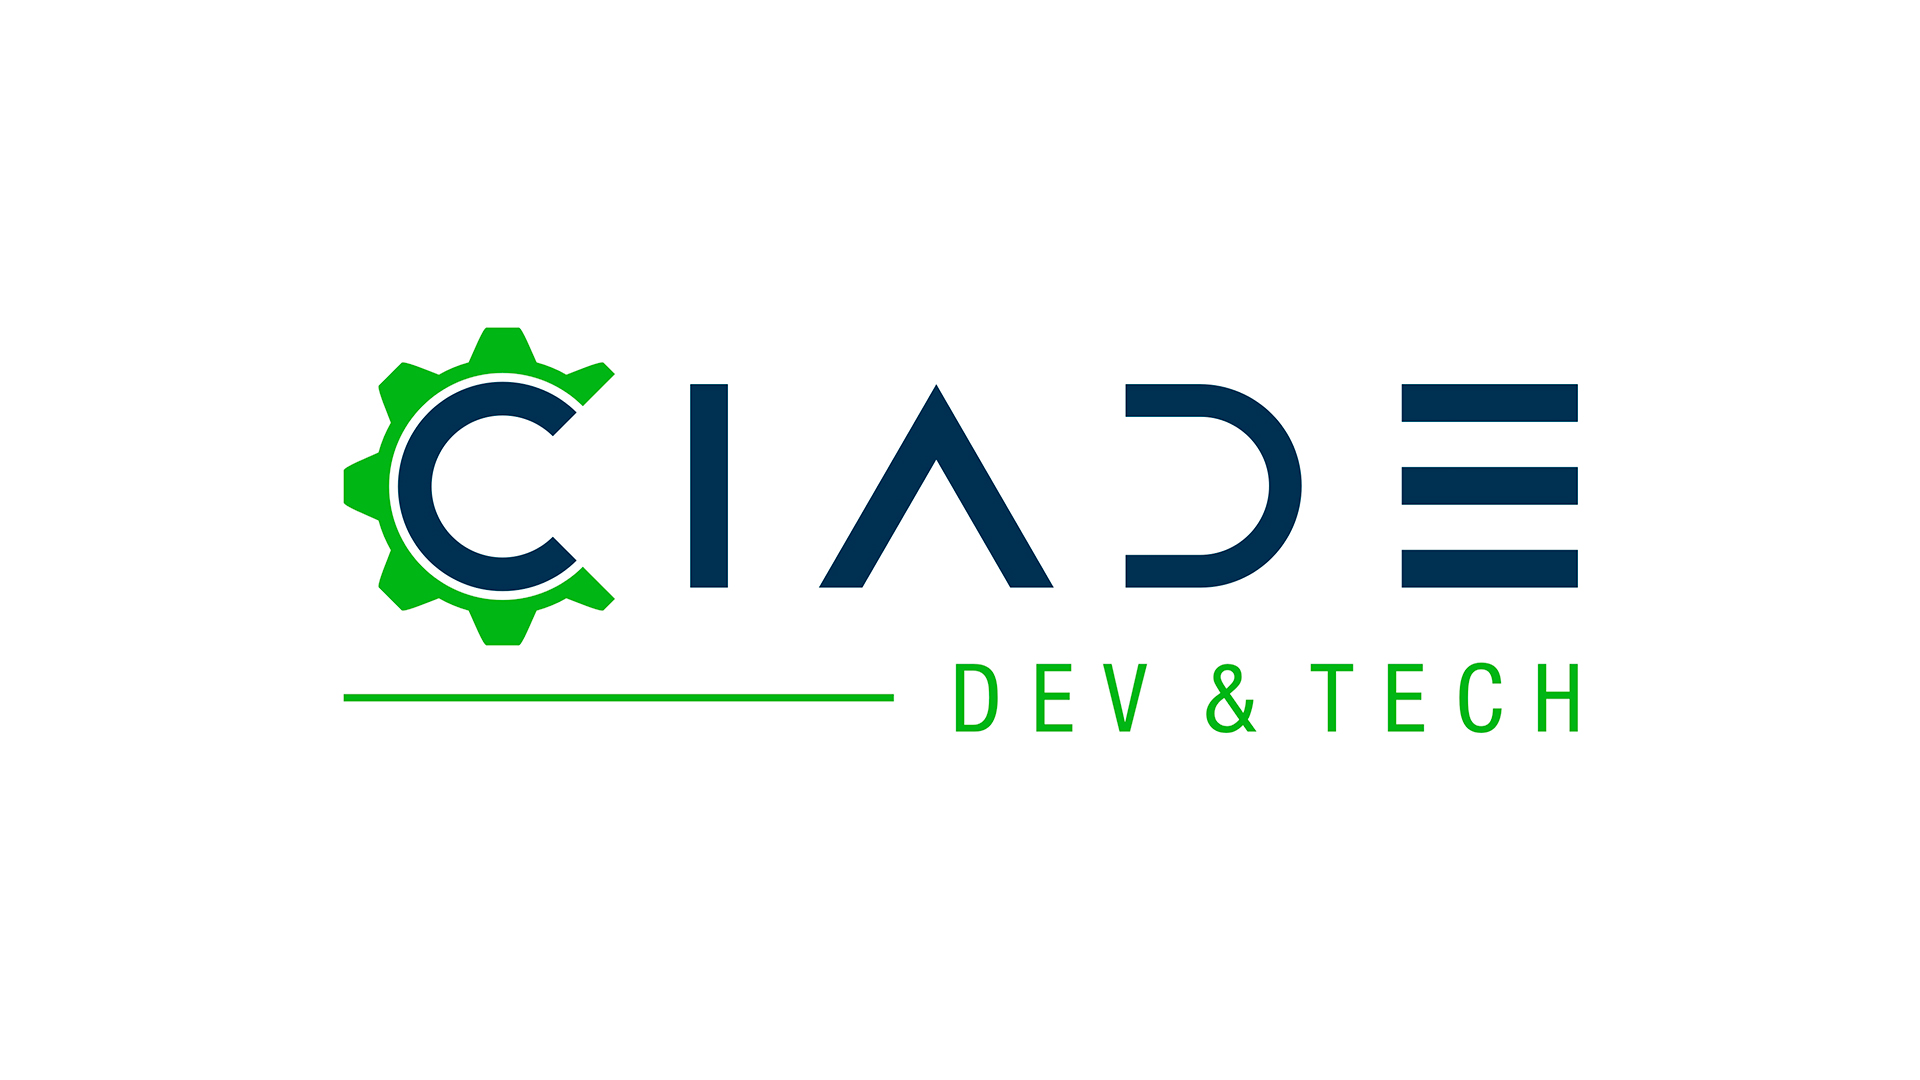 CIADE DEV & TECH - Logotipo